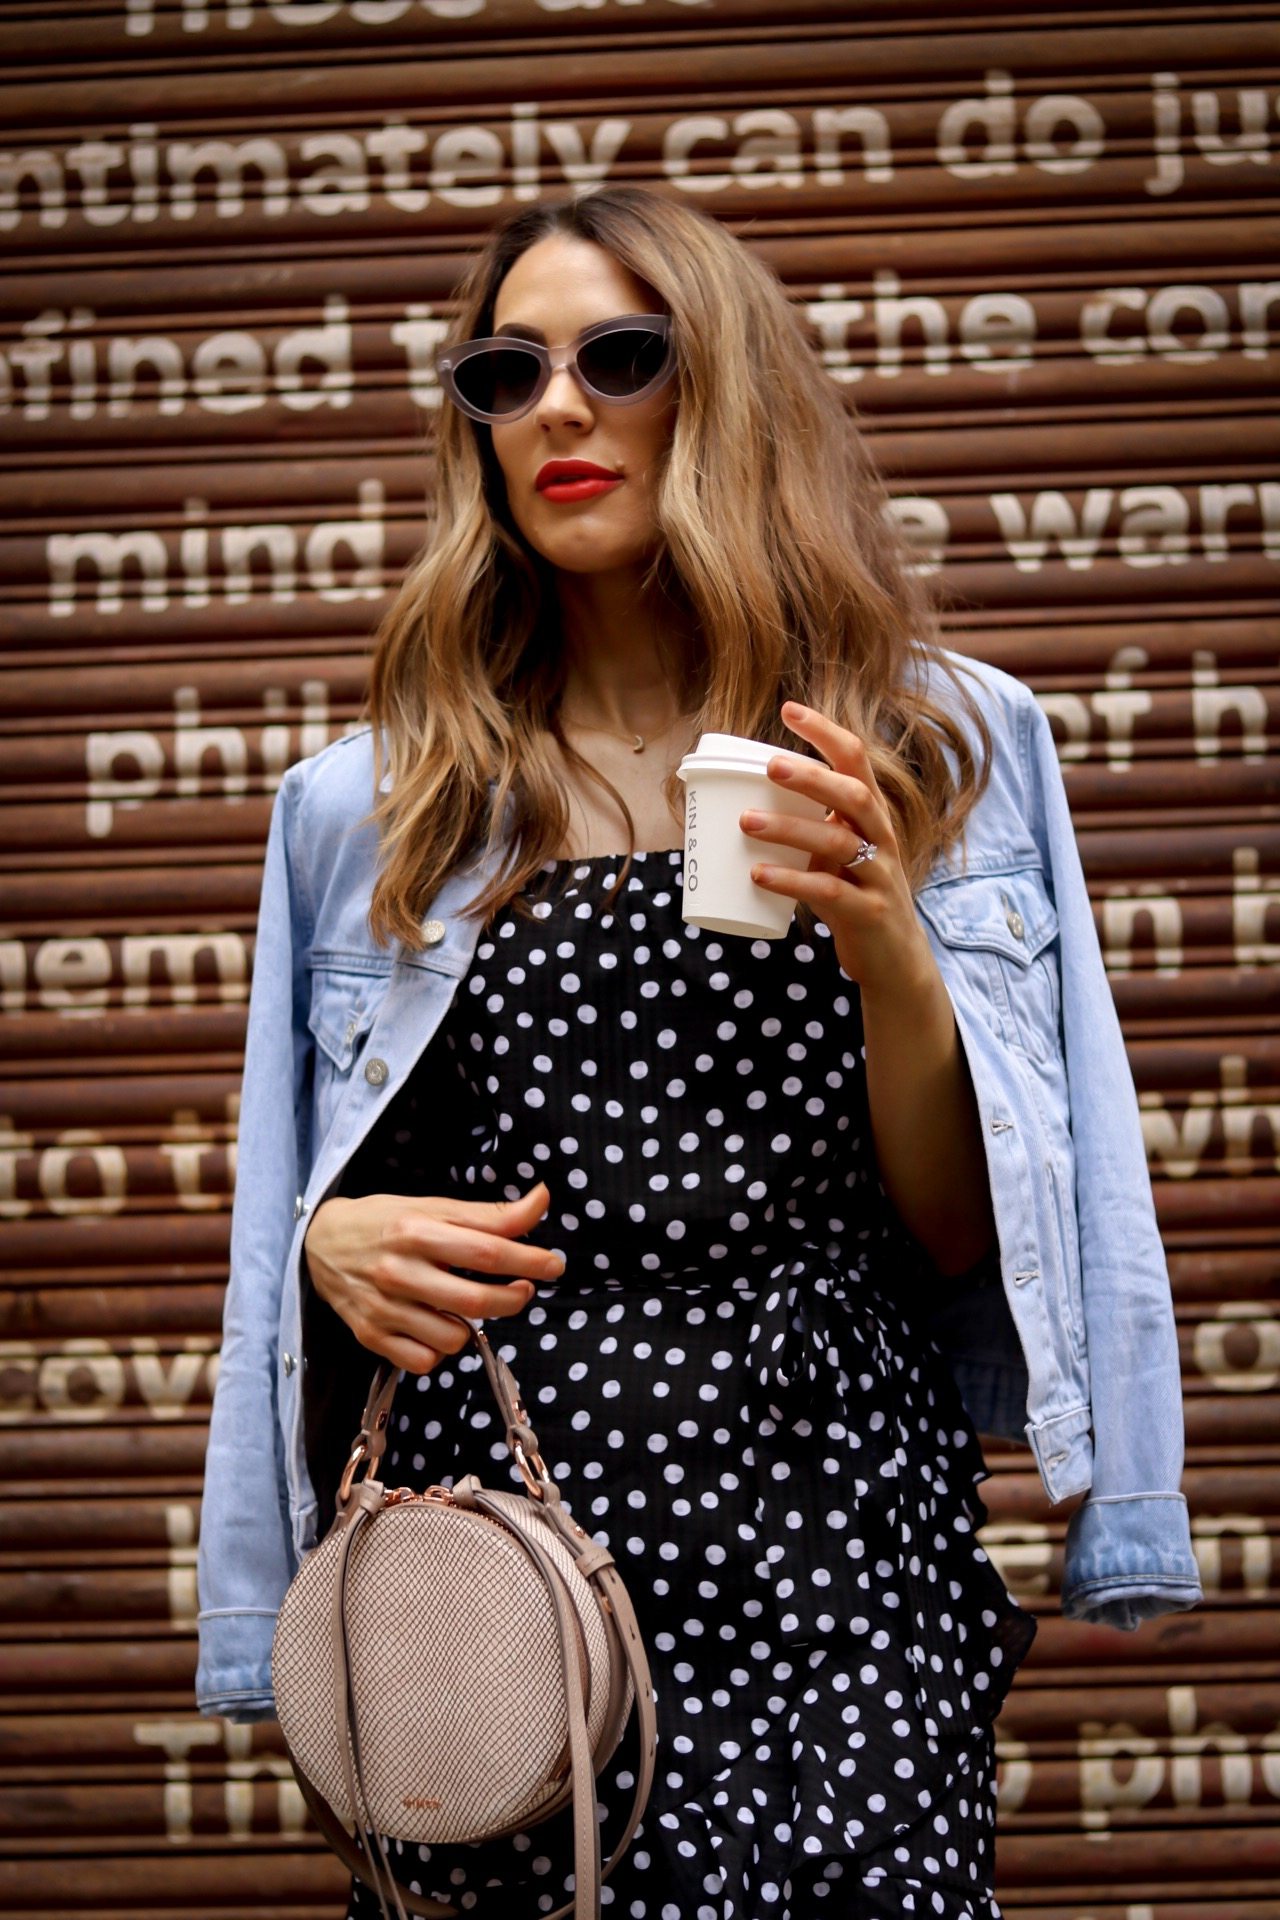 accessories, seashell, sunglasses, trend, fashion trends, how to accessorise, summer 2018 accessory trends, summer 2018 accessories, must have accessories, resin trend, resin earrings, resin, seashell earrings, seashell, cat eye sunglasses, cat eye, beaded clutch, clutch, must have clutch